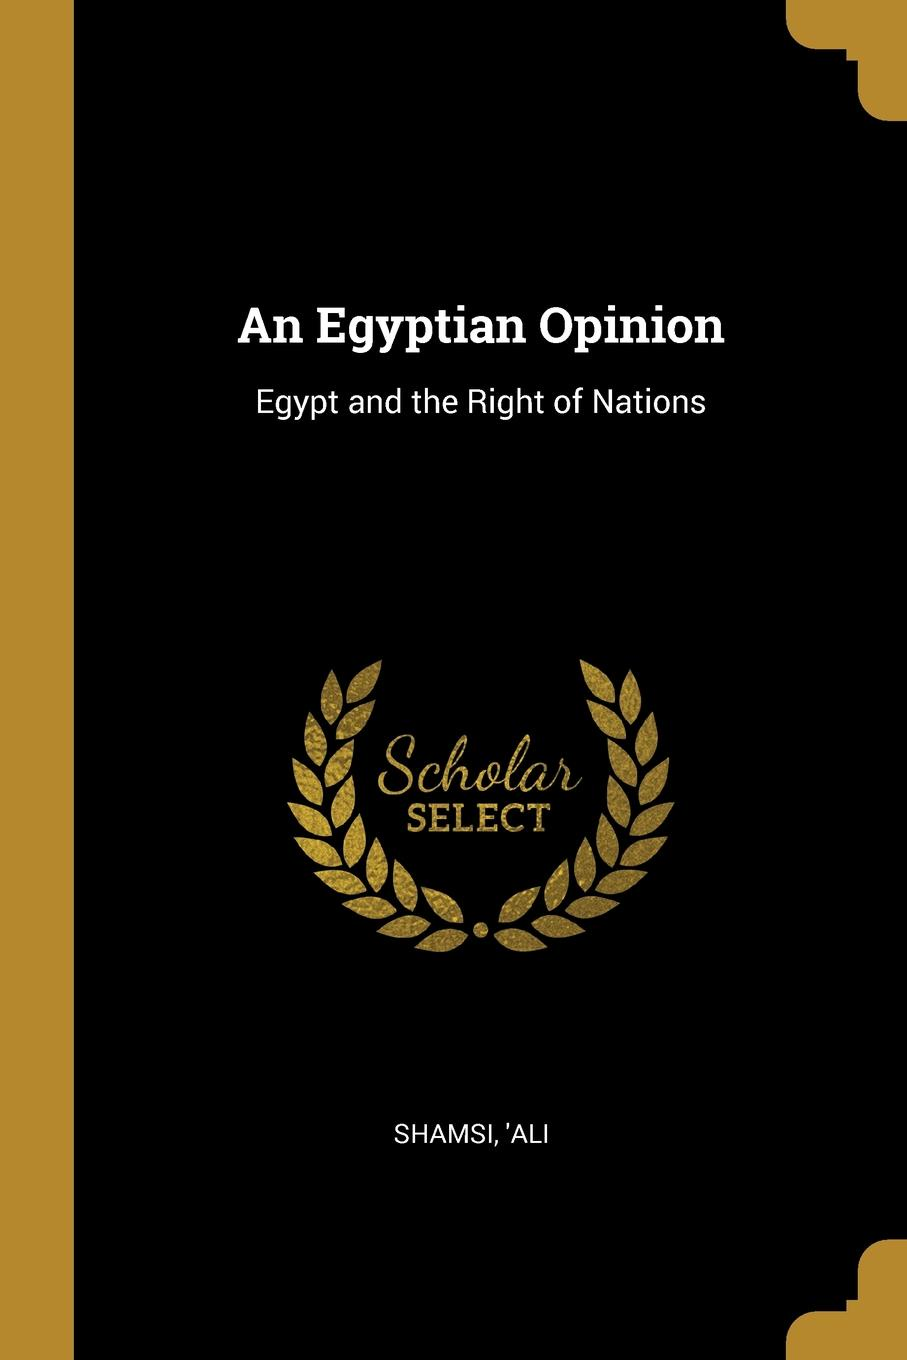 Shamsi 'Ali. An Egyptian Opinion. Egypt and the Right of Nations